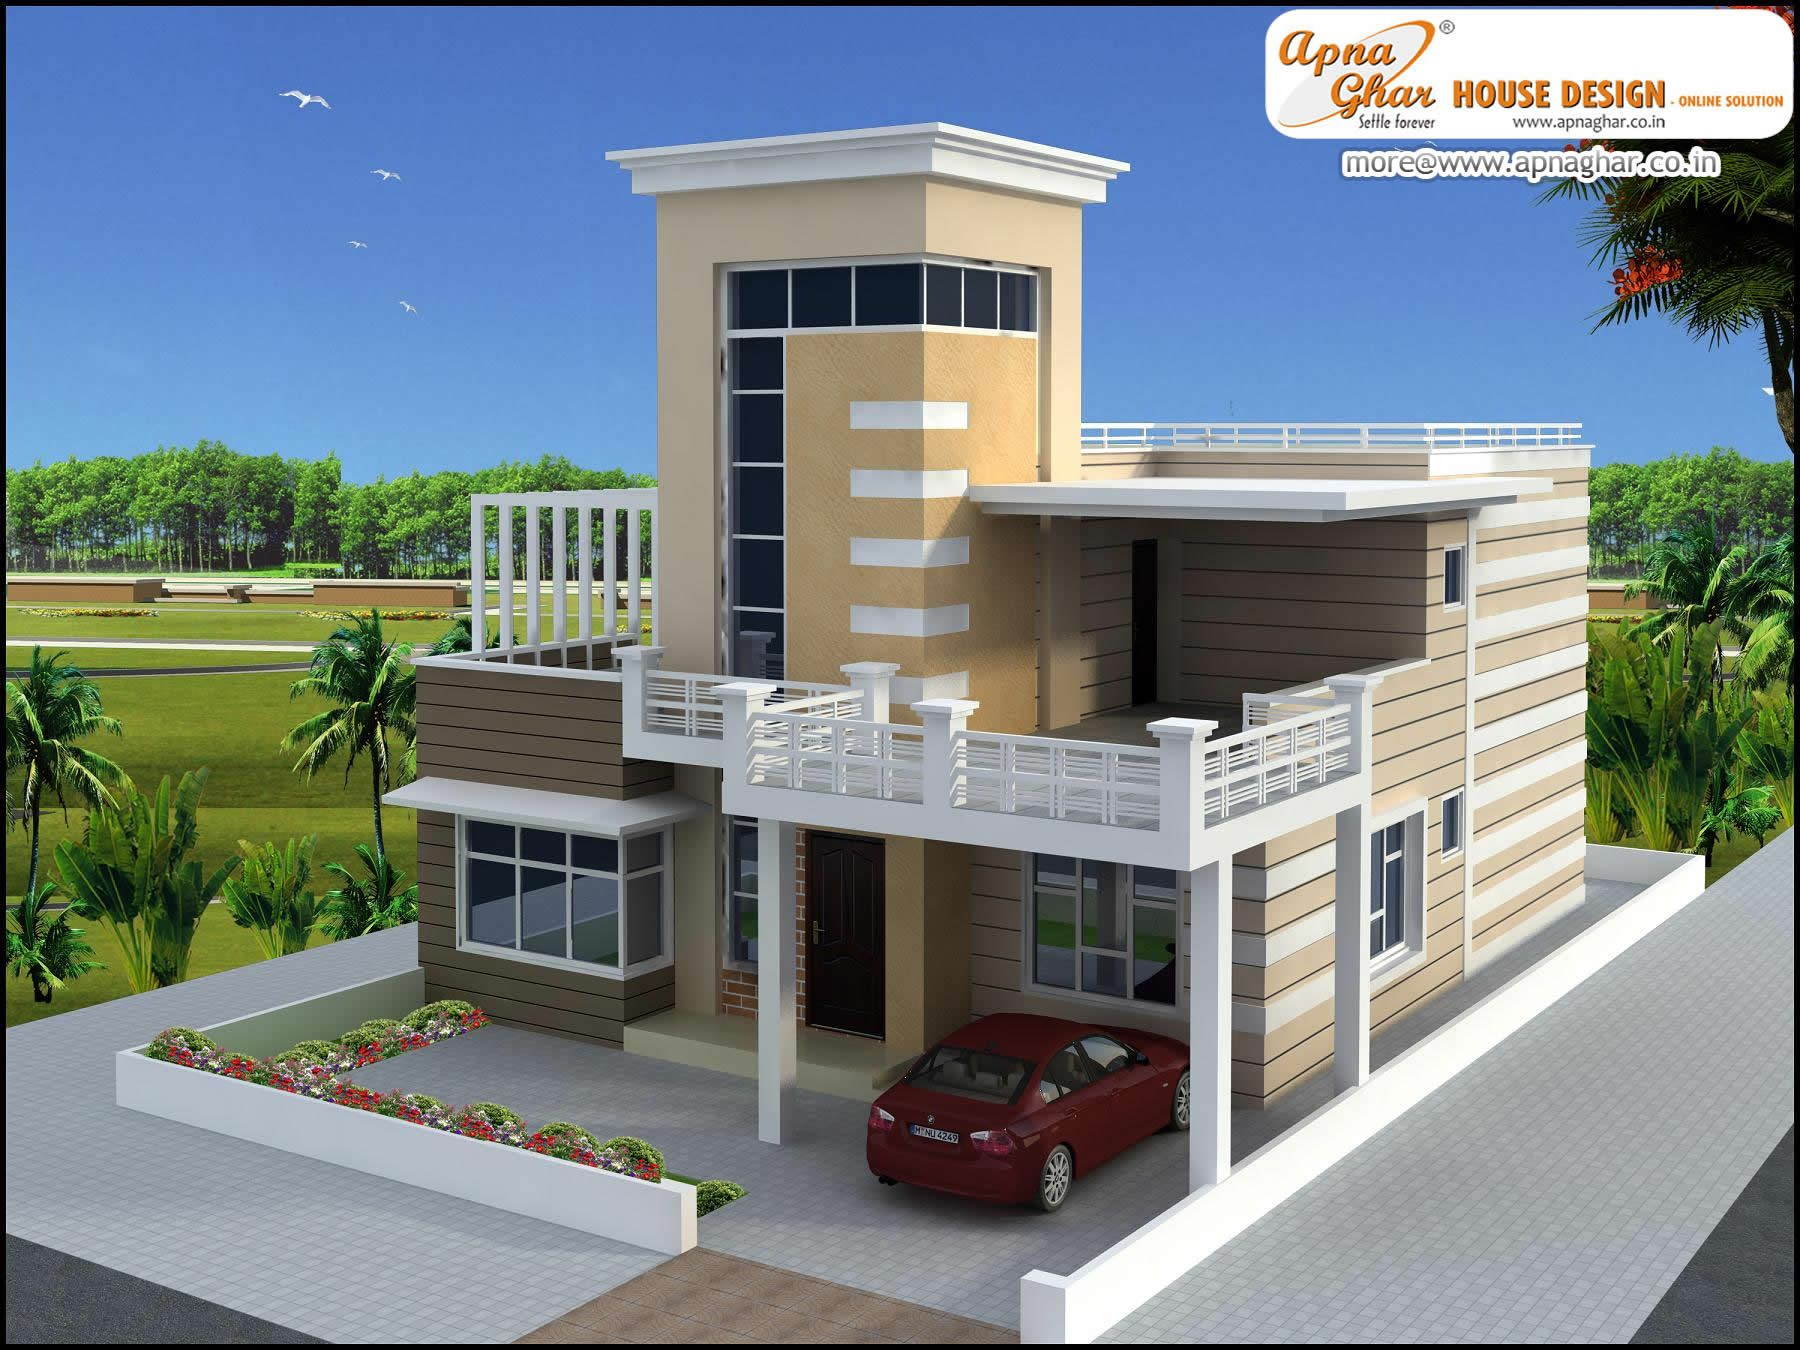 Luxury duplex 2 floors house design area 252m2 21m x for Simple modern house models